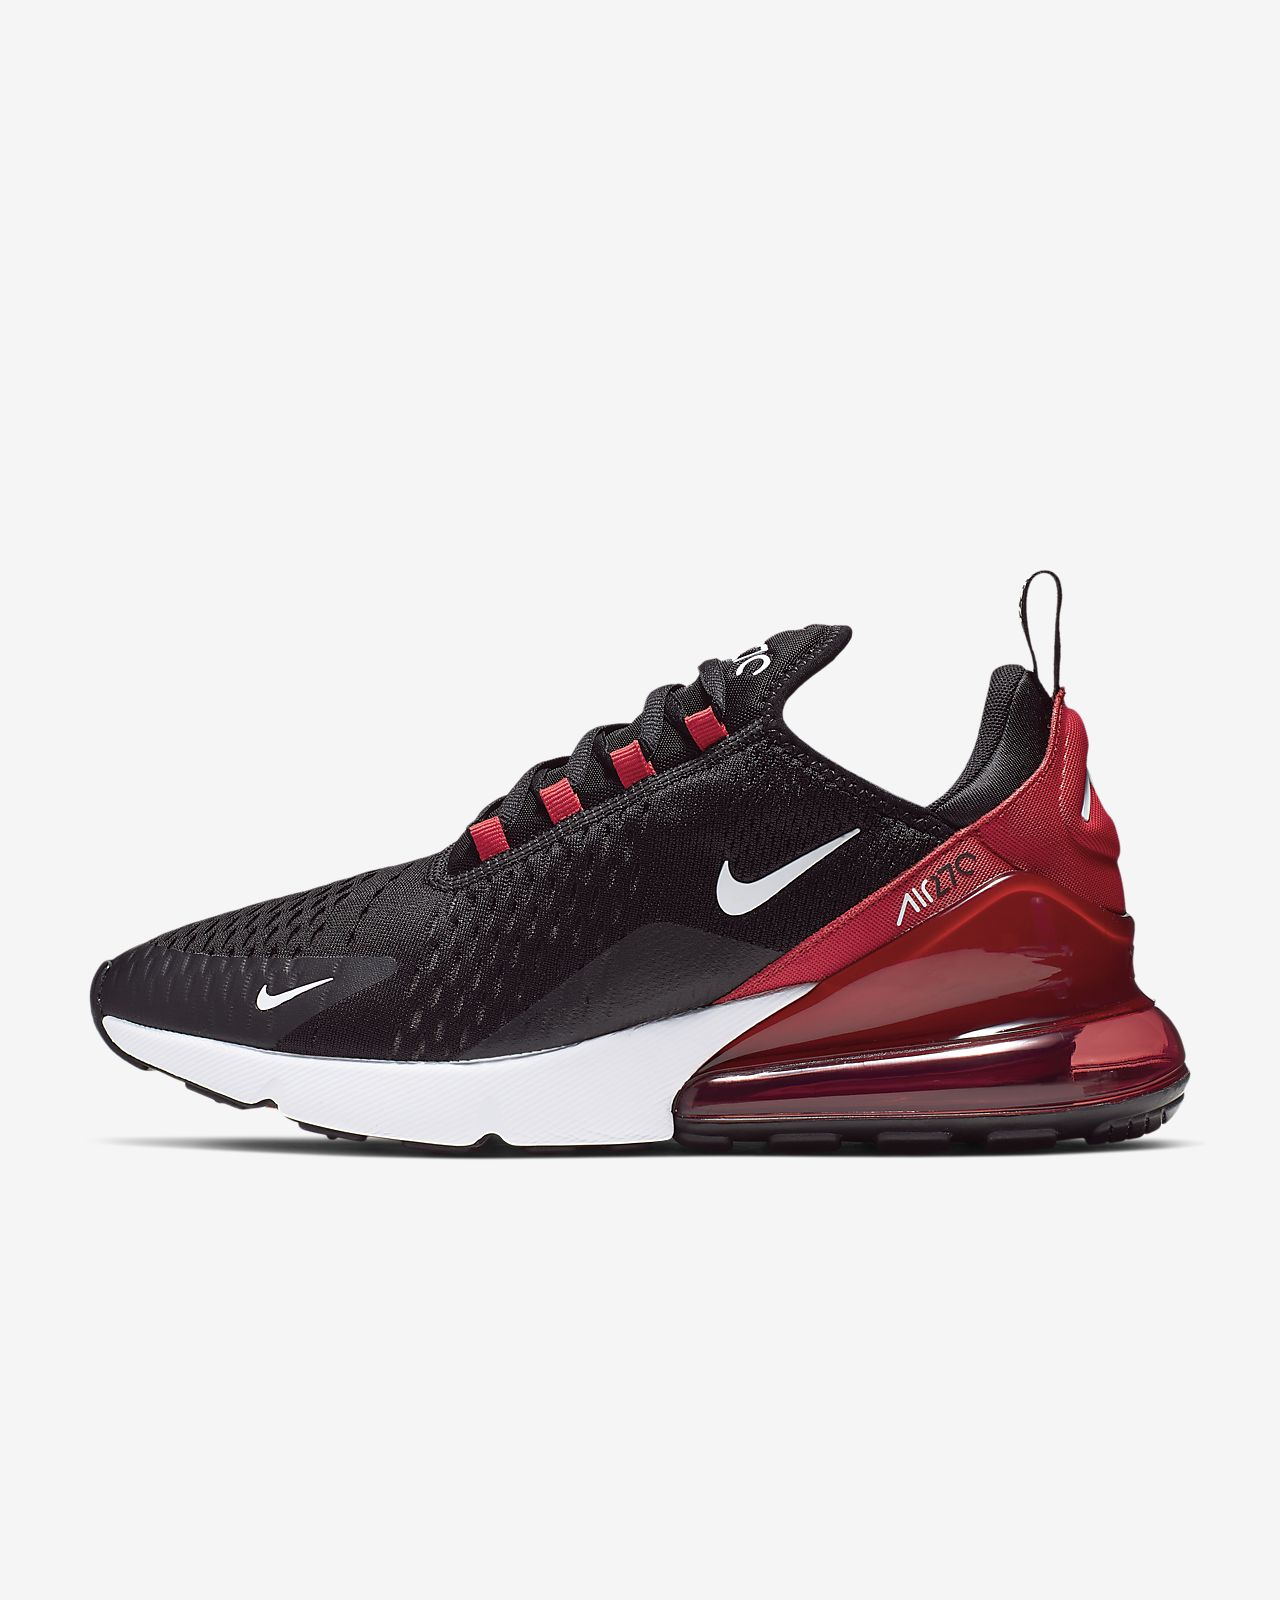 32a8578212fa24 Low Resolution Nike Air Max 270 Men s Shoe Nike Air Max 270 Men s Shoe